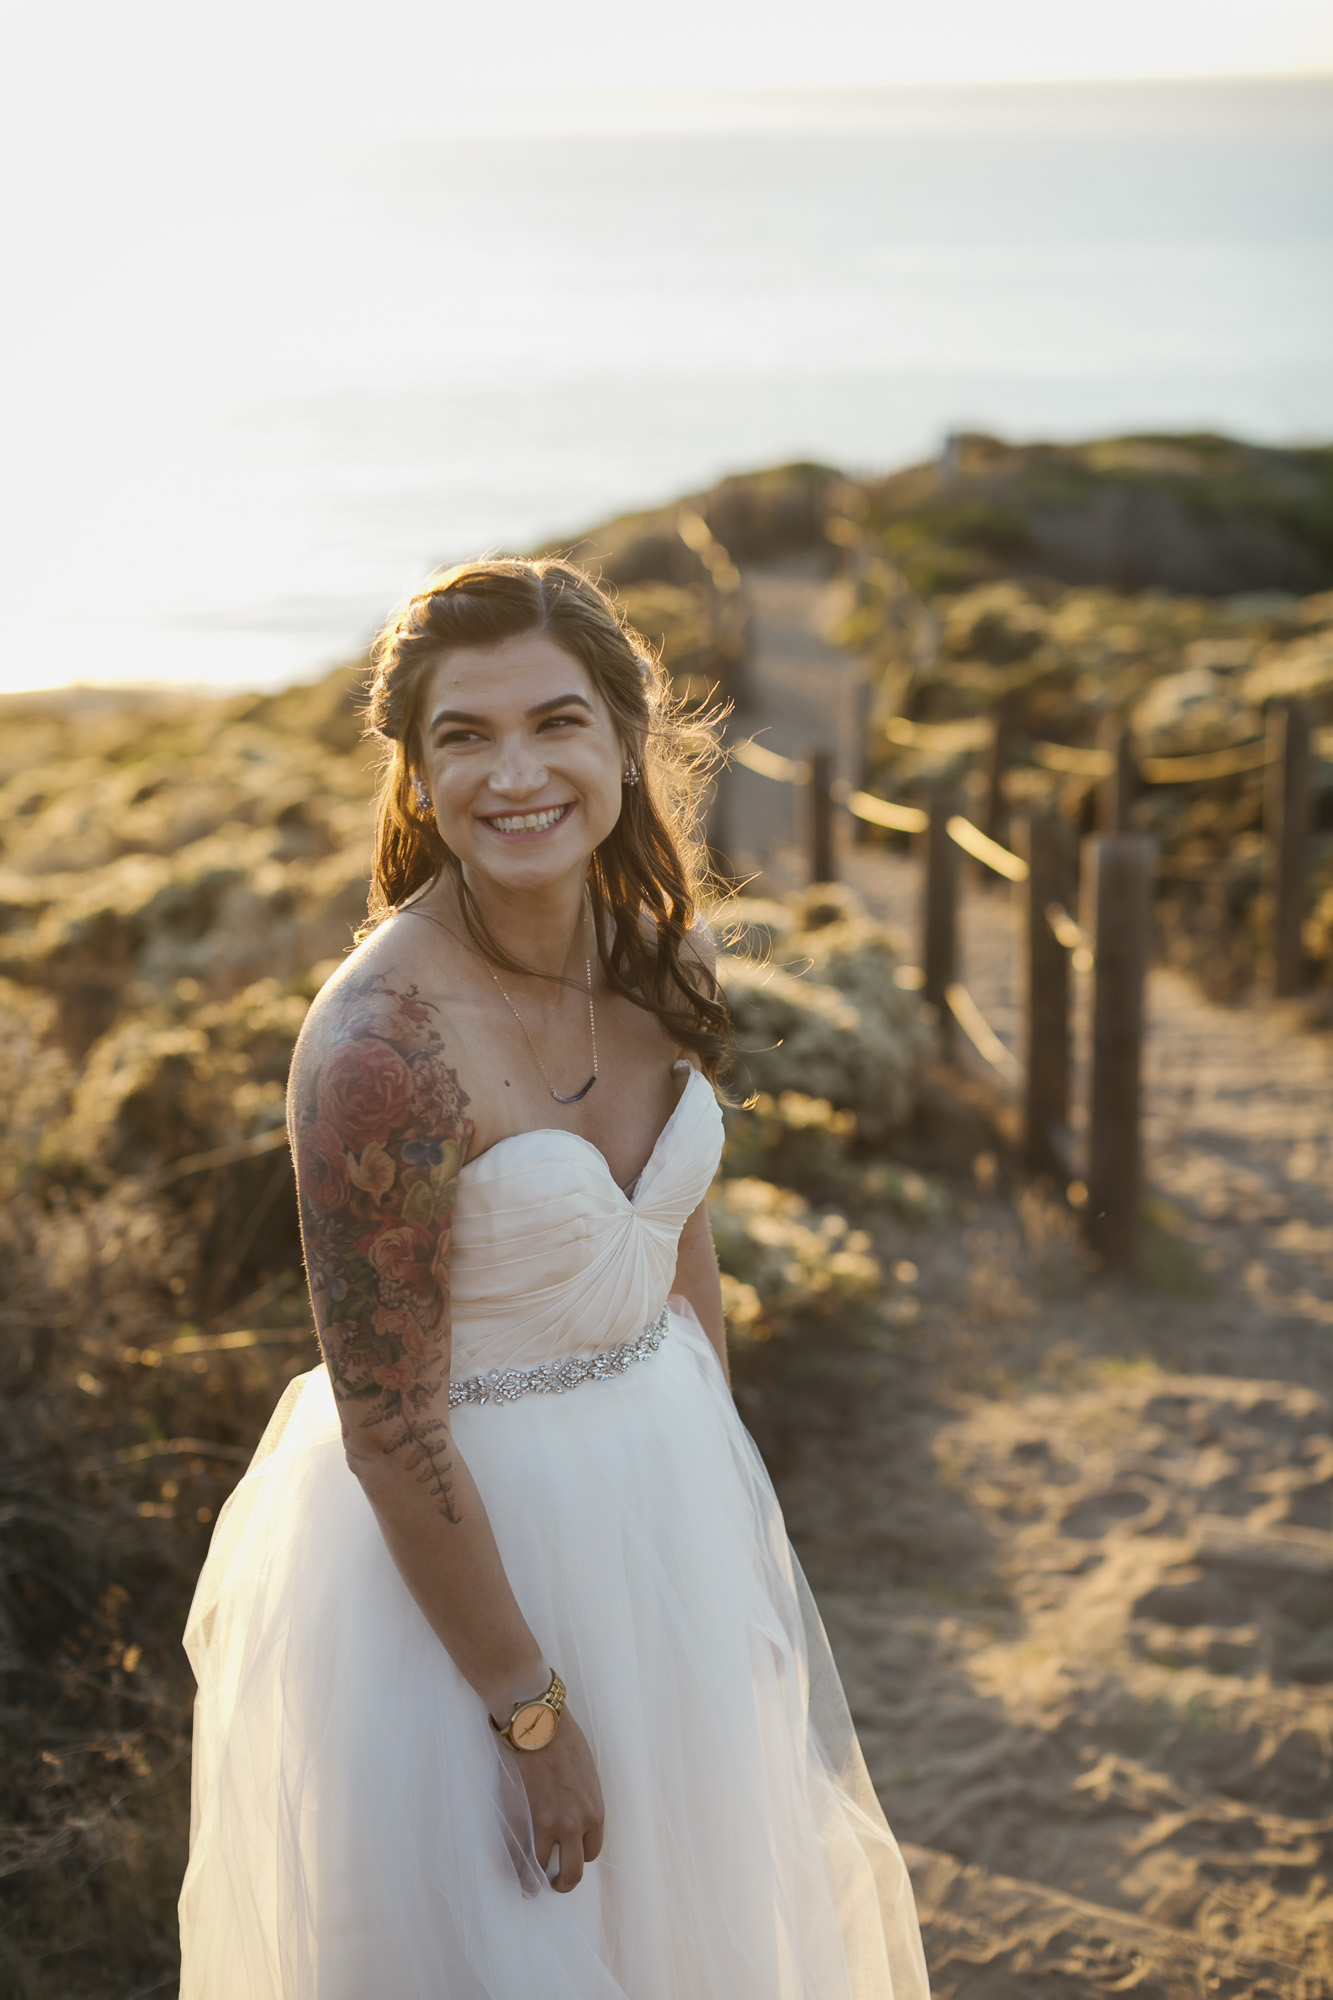 A tattooed bride smiles on her wedding day in the afternoon light at Baker Beach in San Francisco